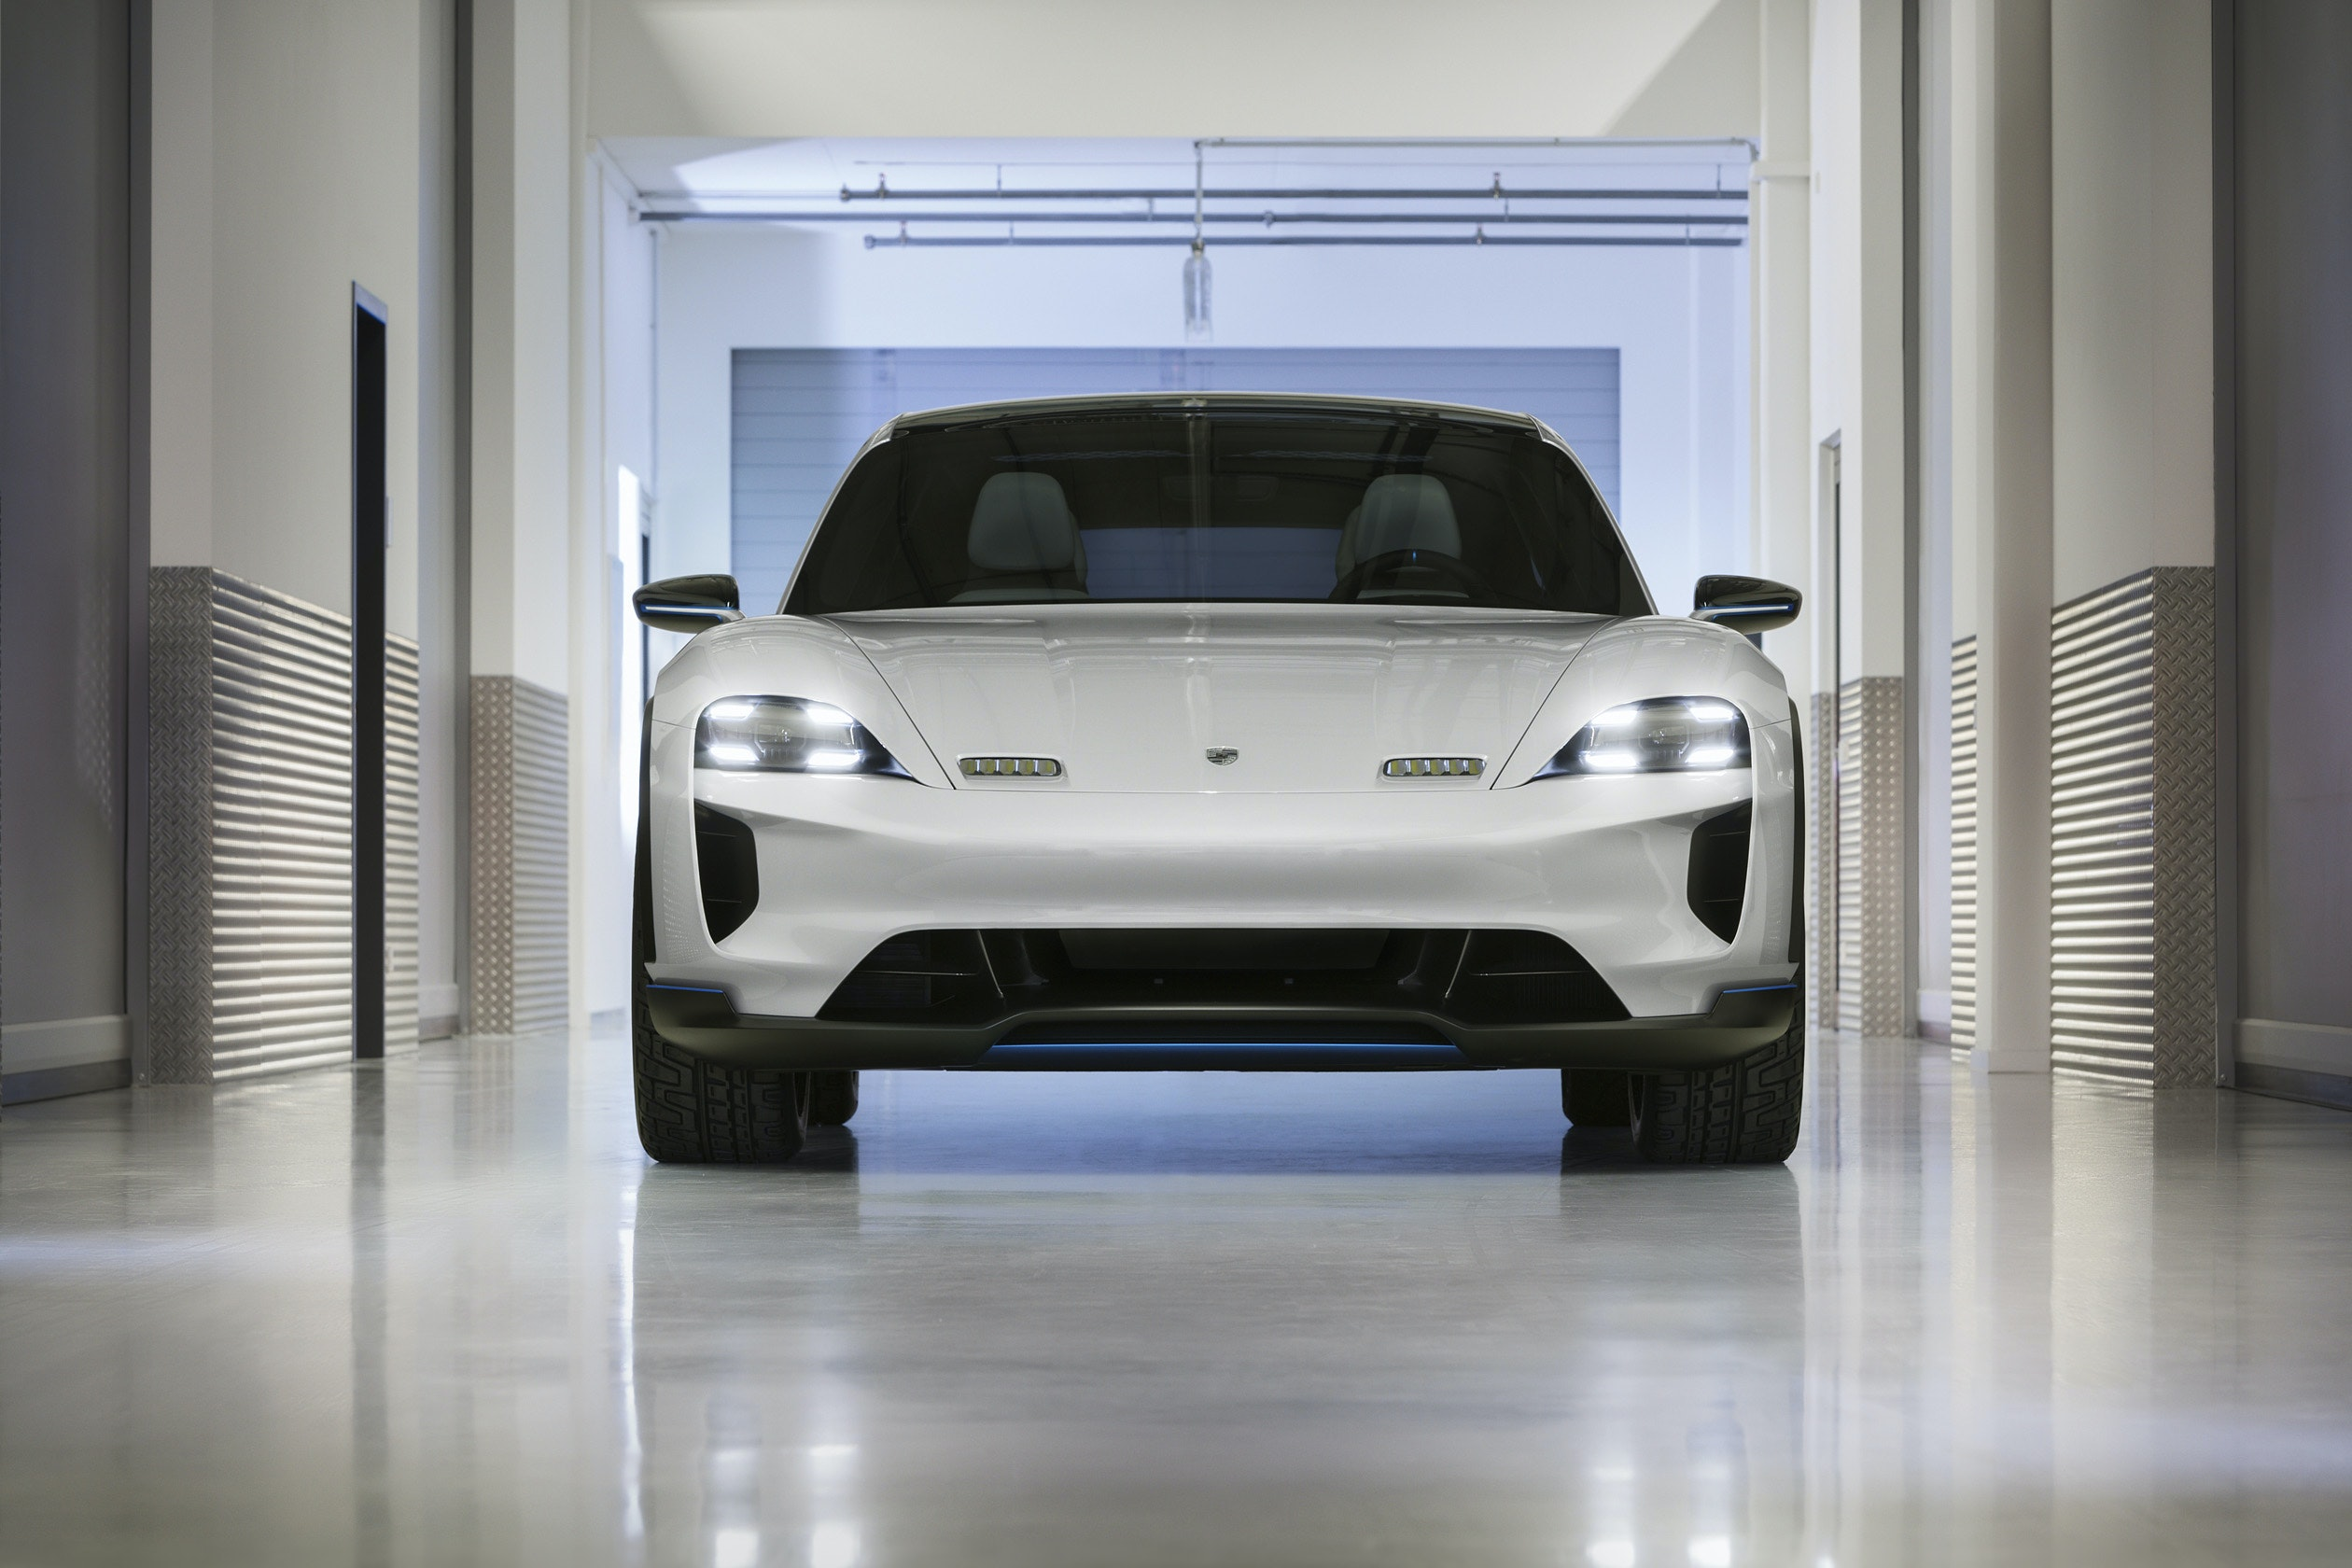 Porsche Just Unveiled an Electric SUV to Take On Tesla Model